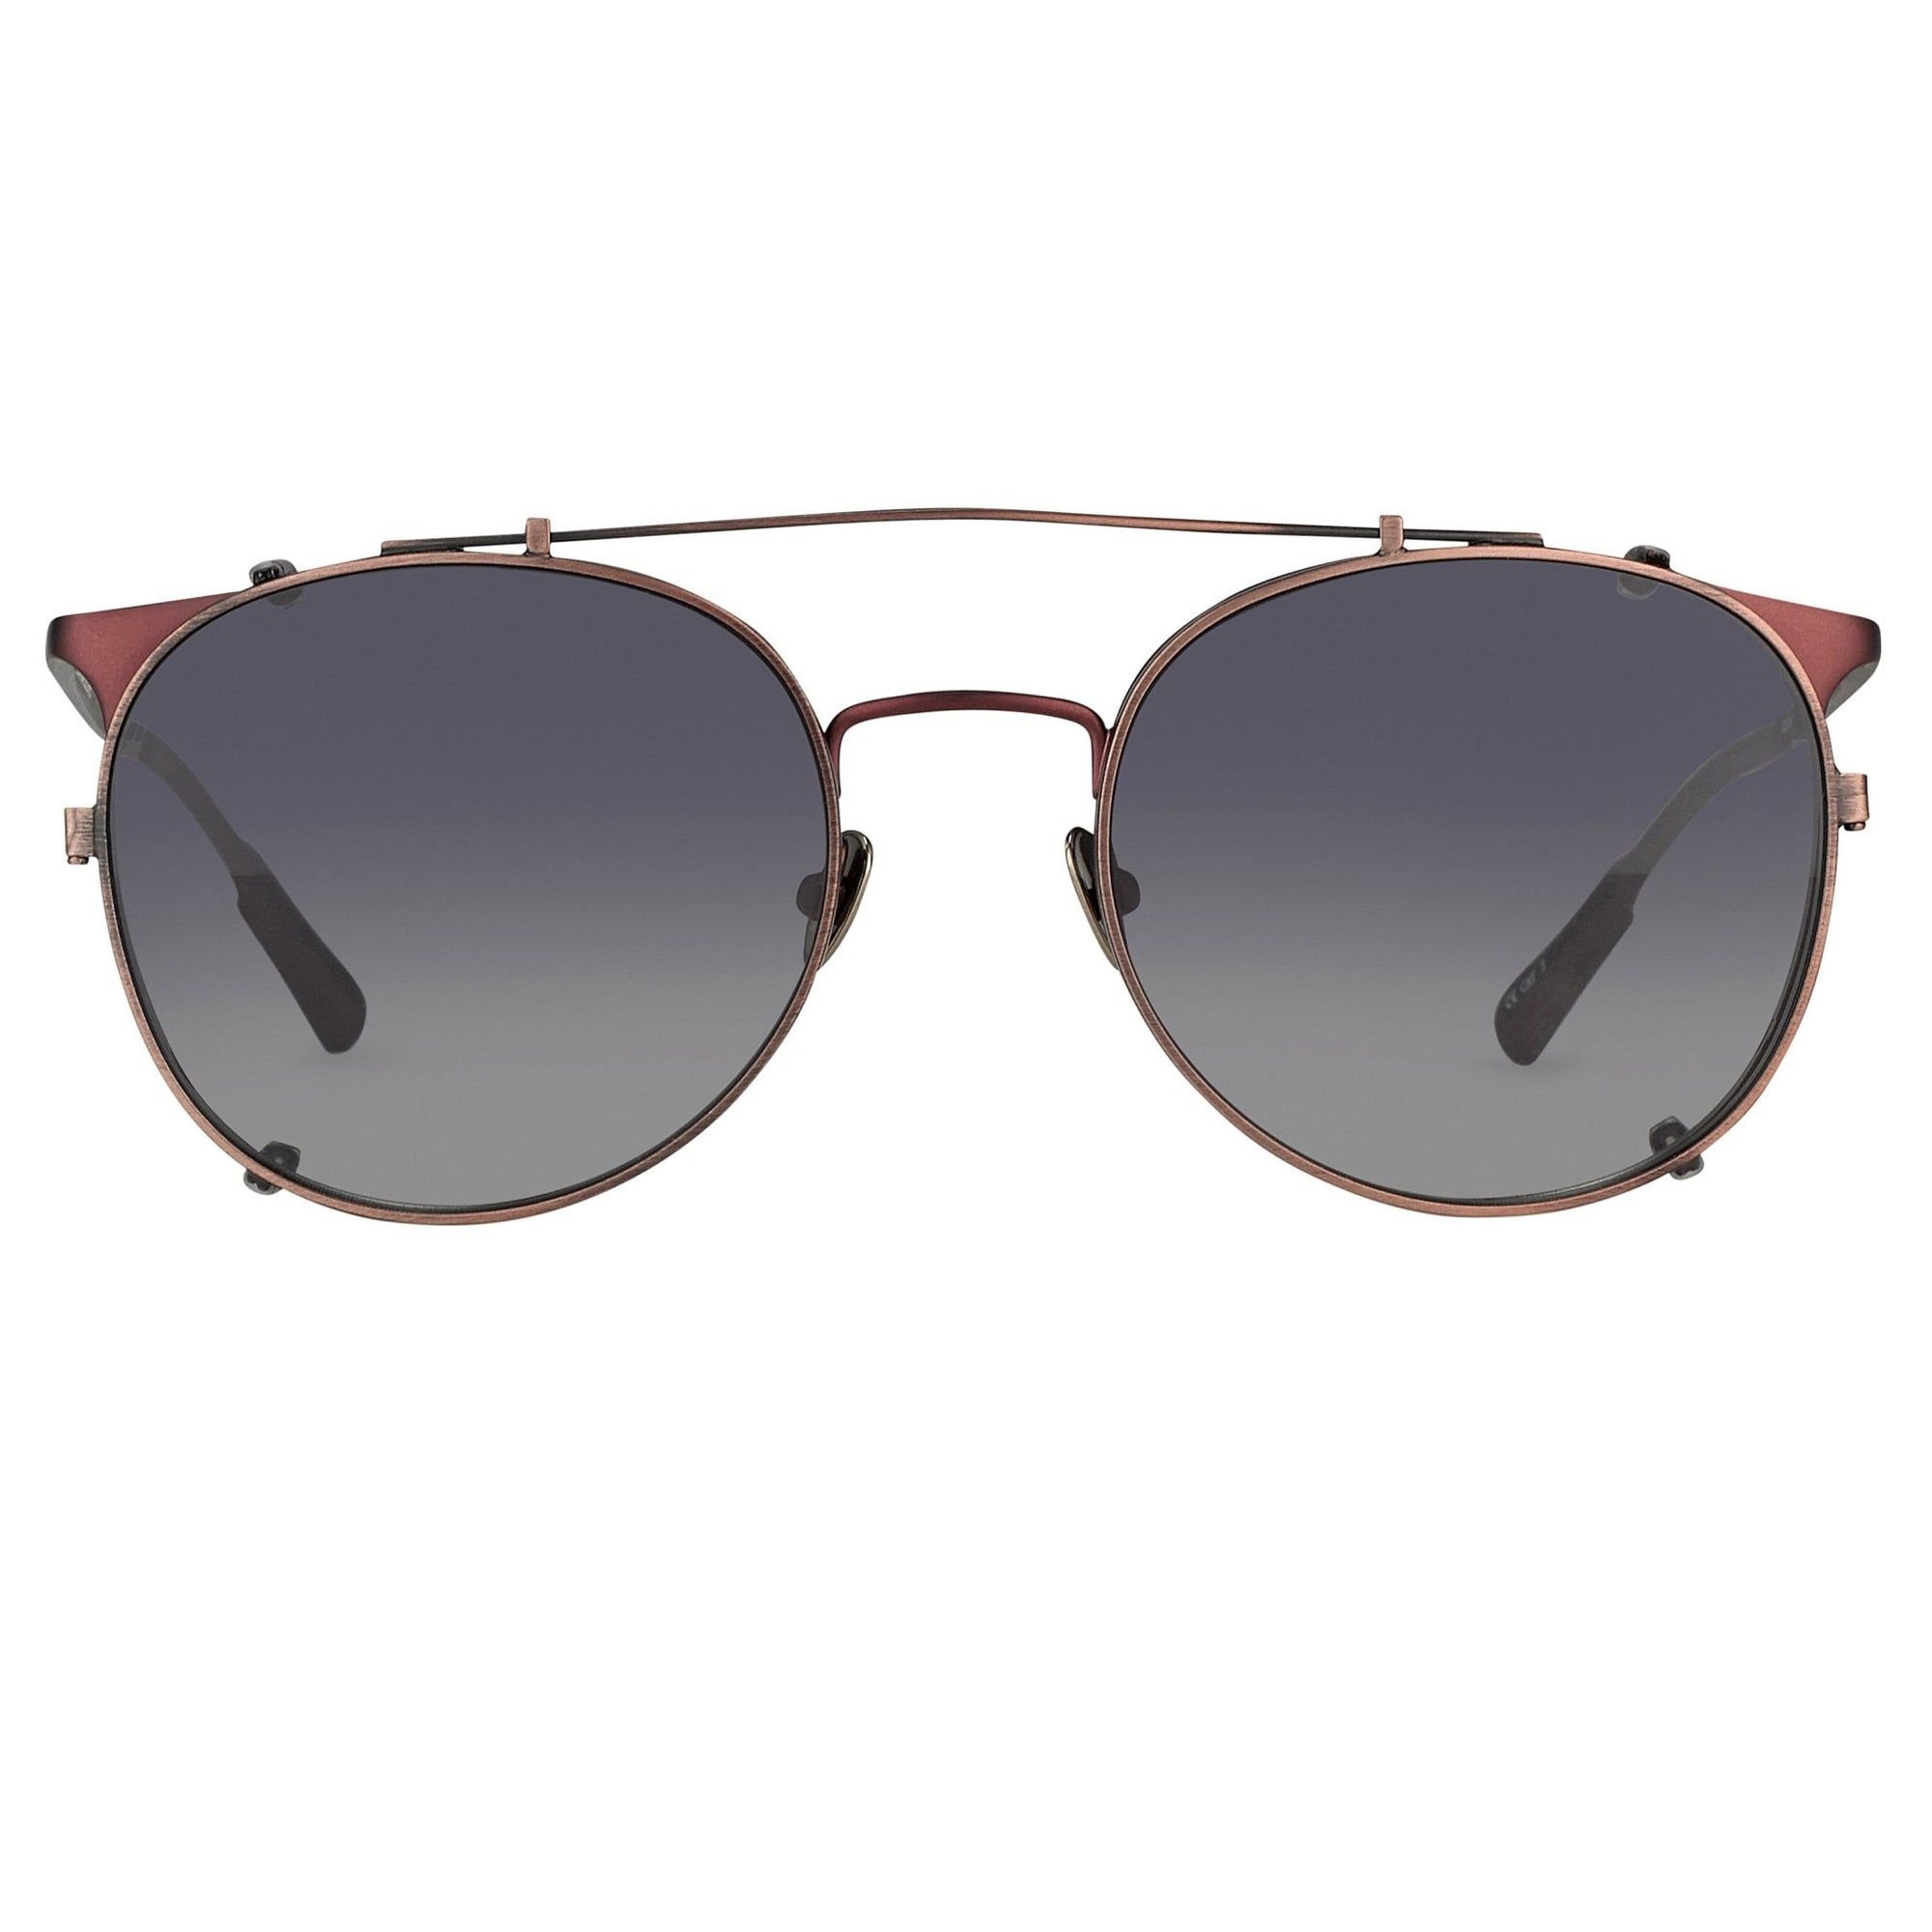 Kris Van Assche Sunglasses Unisex Oval Matte Burgundy Bronze Clip-On and Grey Lenses Category 3 - KVA69C5SUN - Watches & Crystals